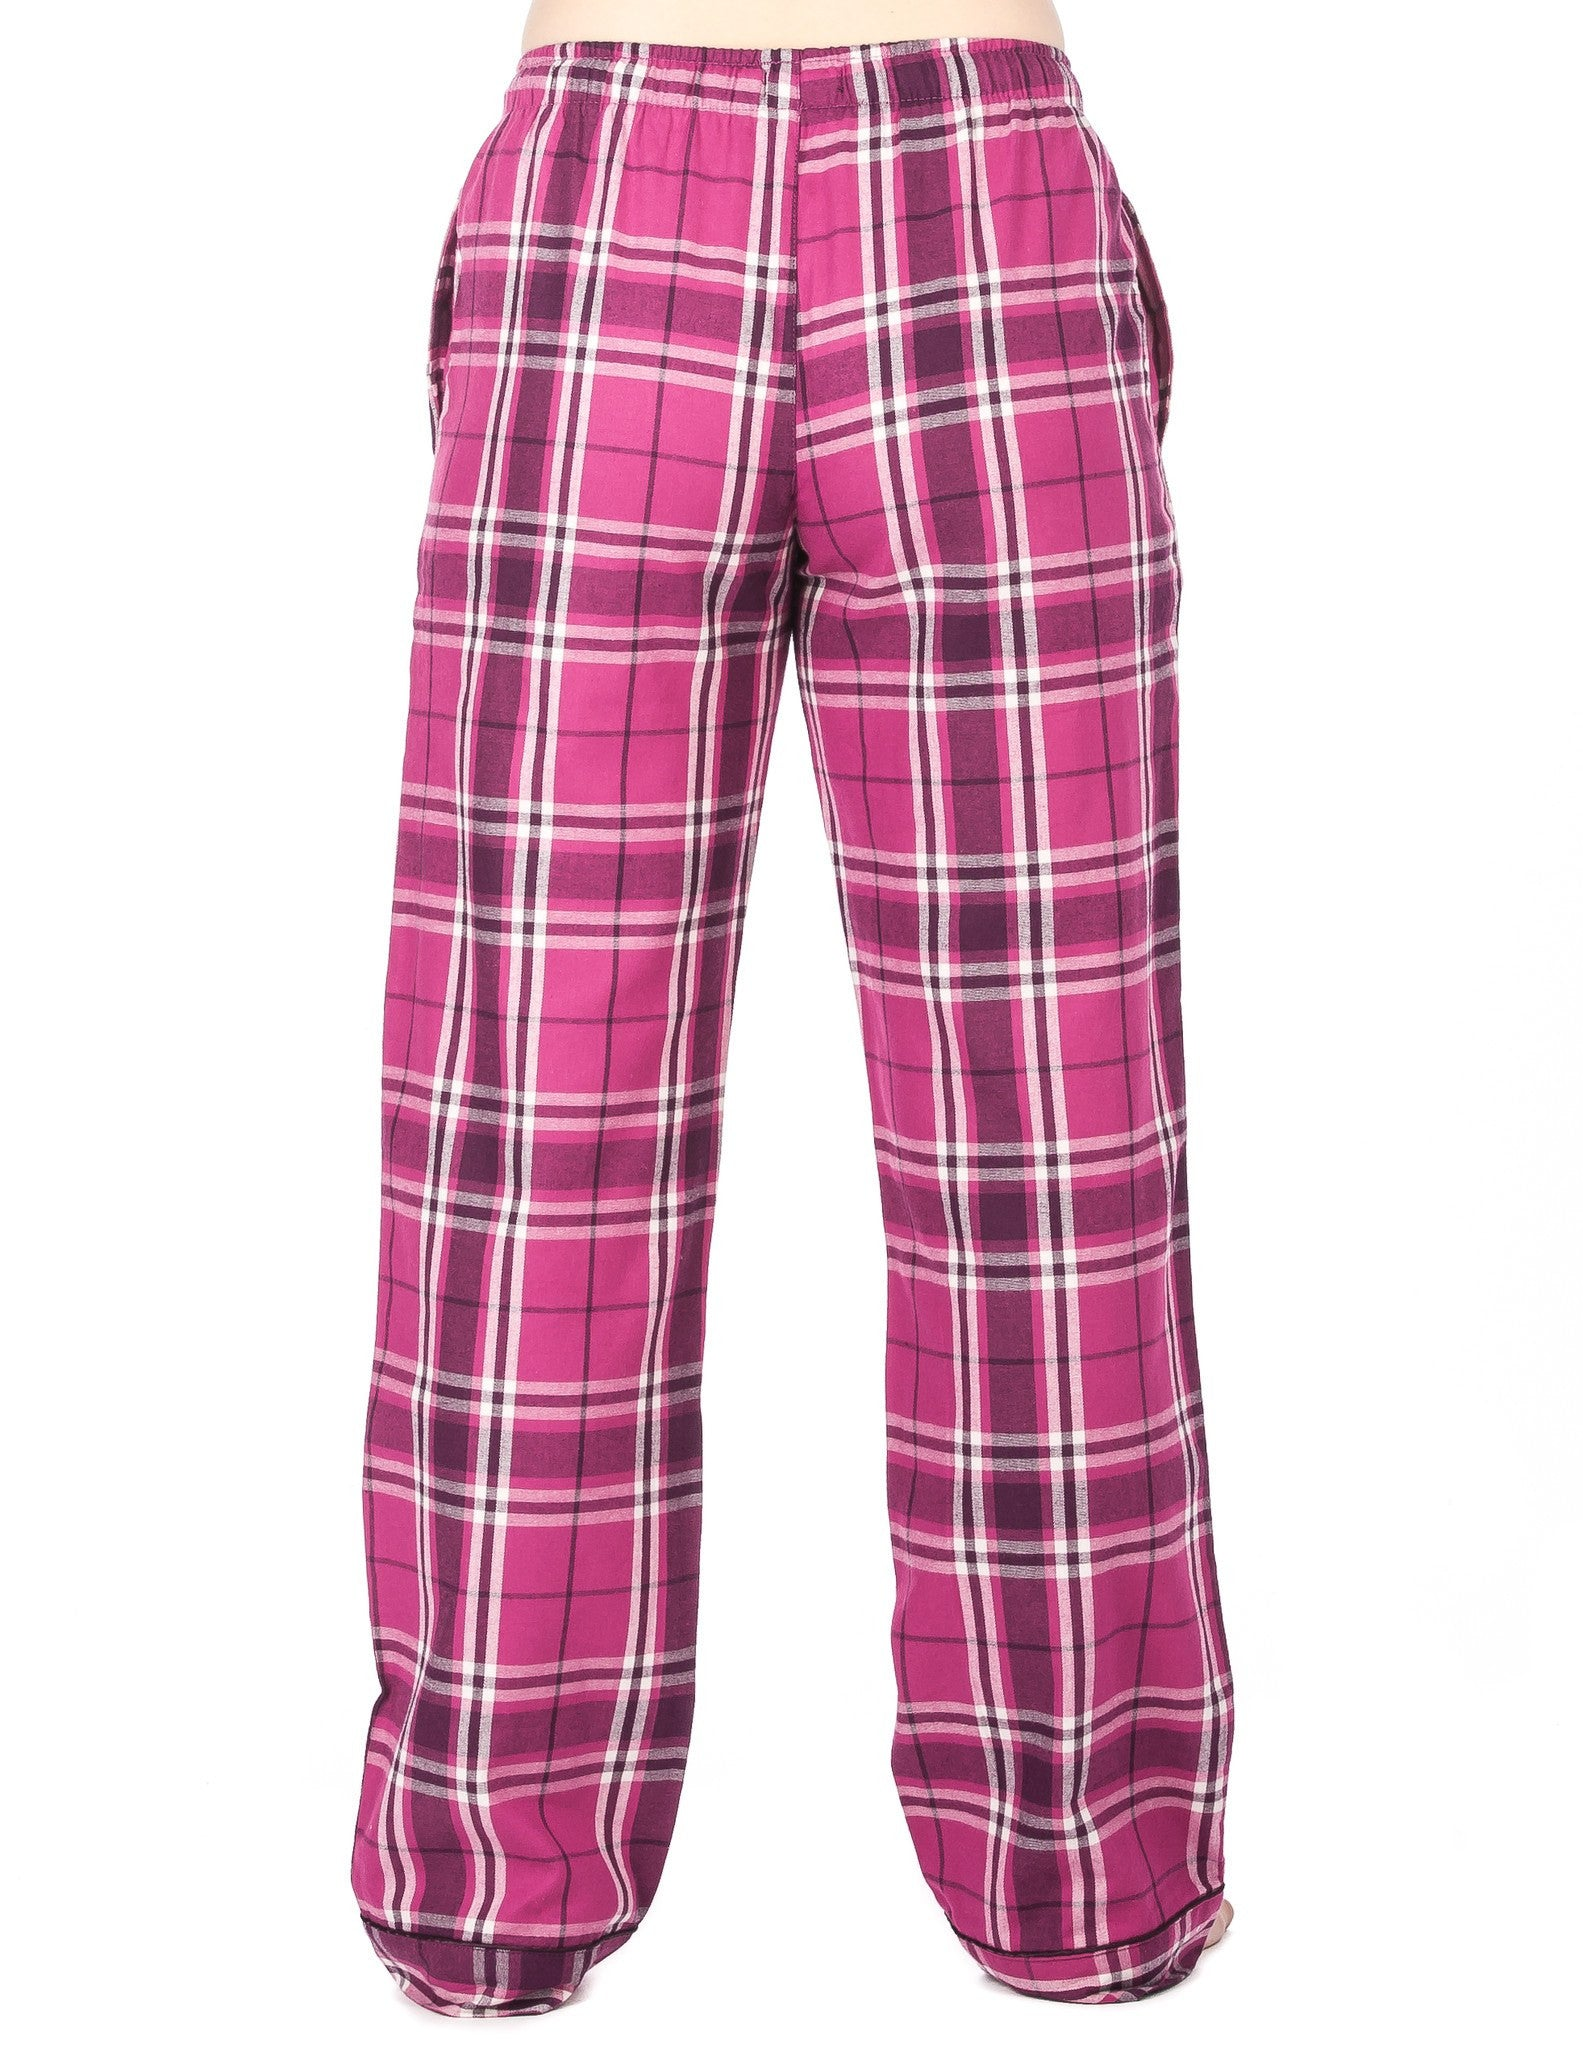 Plaid - Purple/Pink